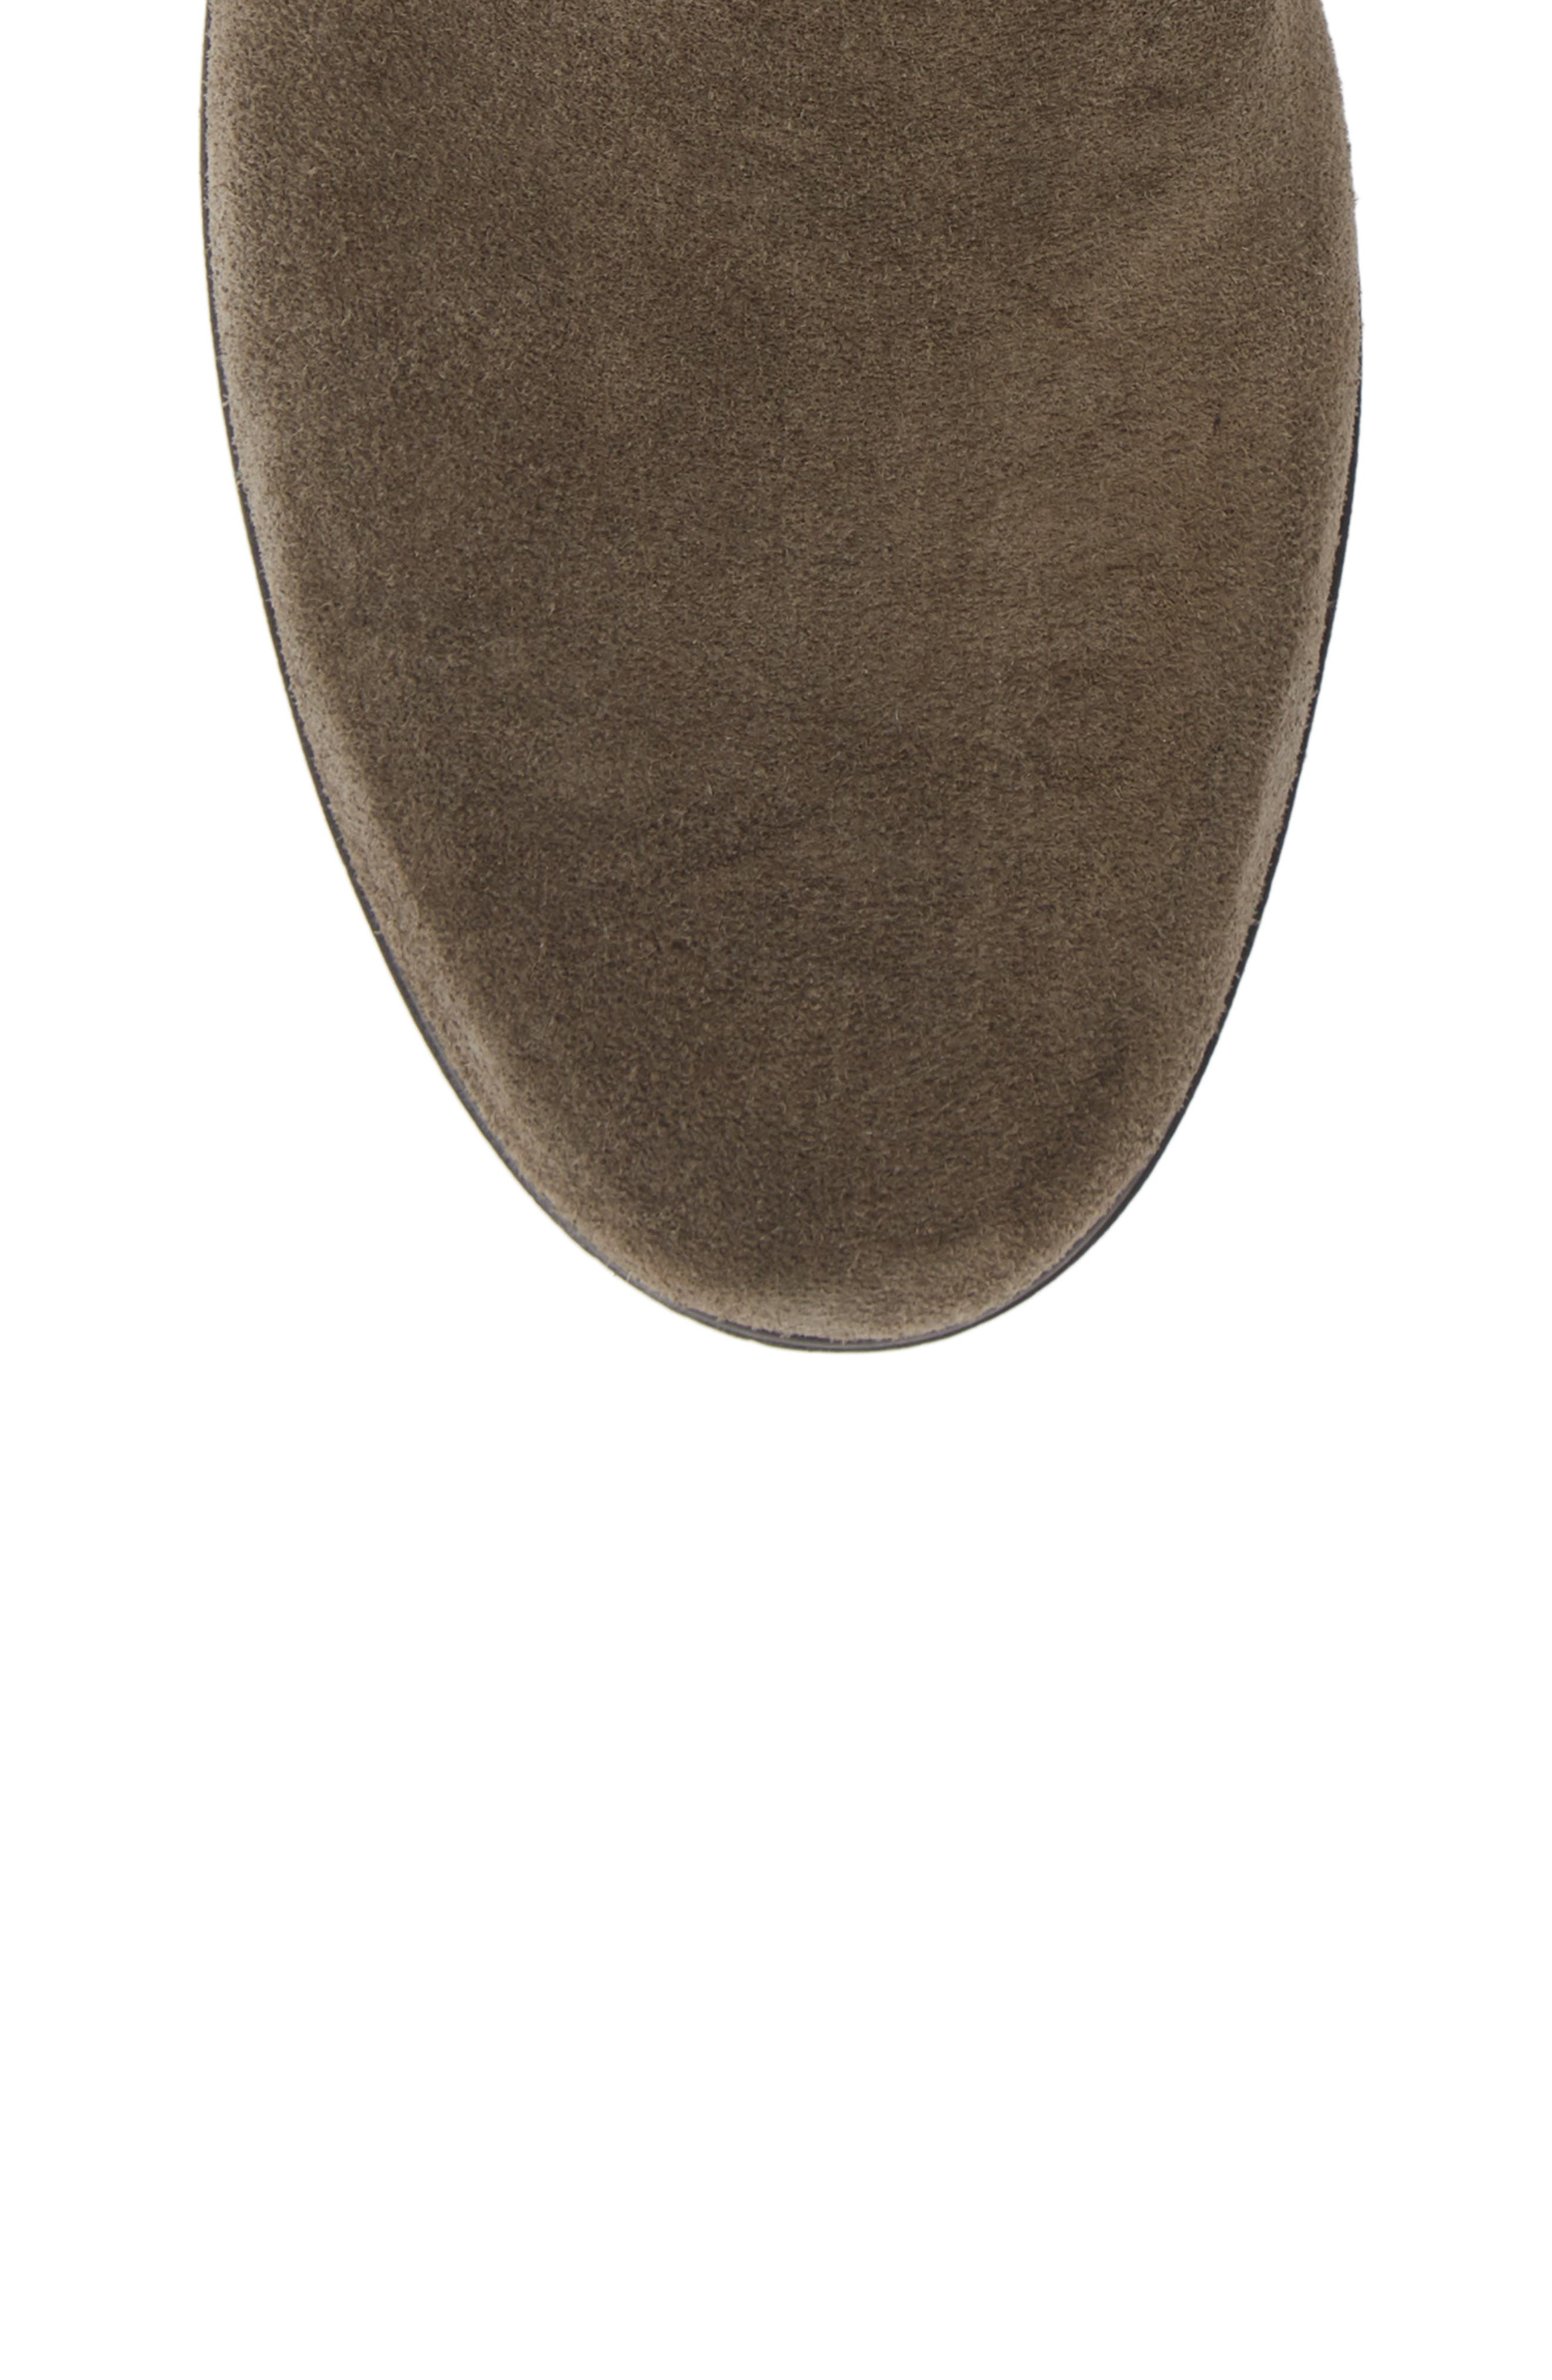 THE FLEXX, Slimmer Chelsea Wedge Boot, Alternate thumbnail 5, color, BROWN SUEDE